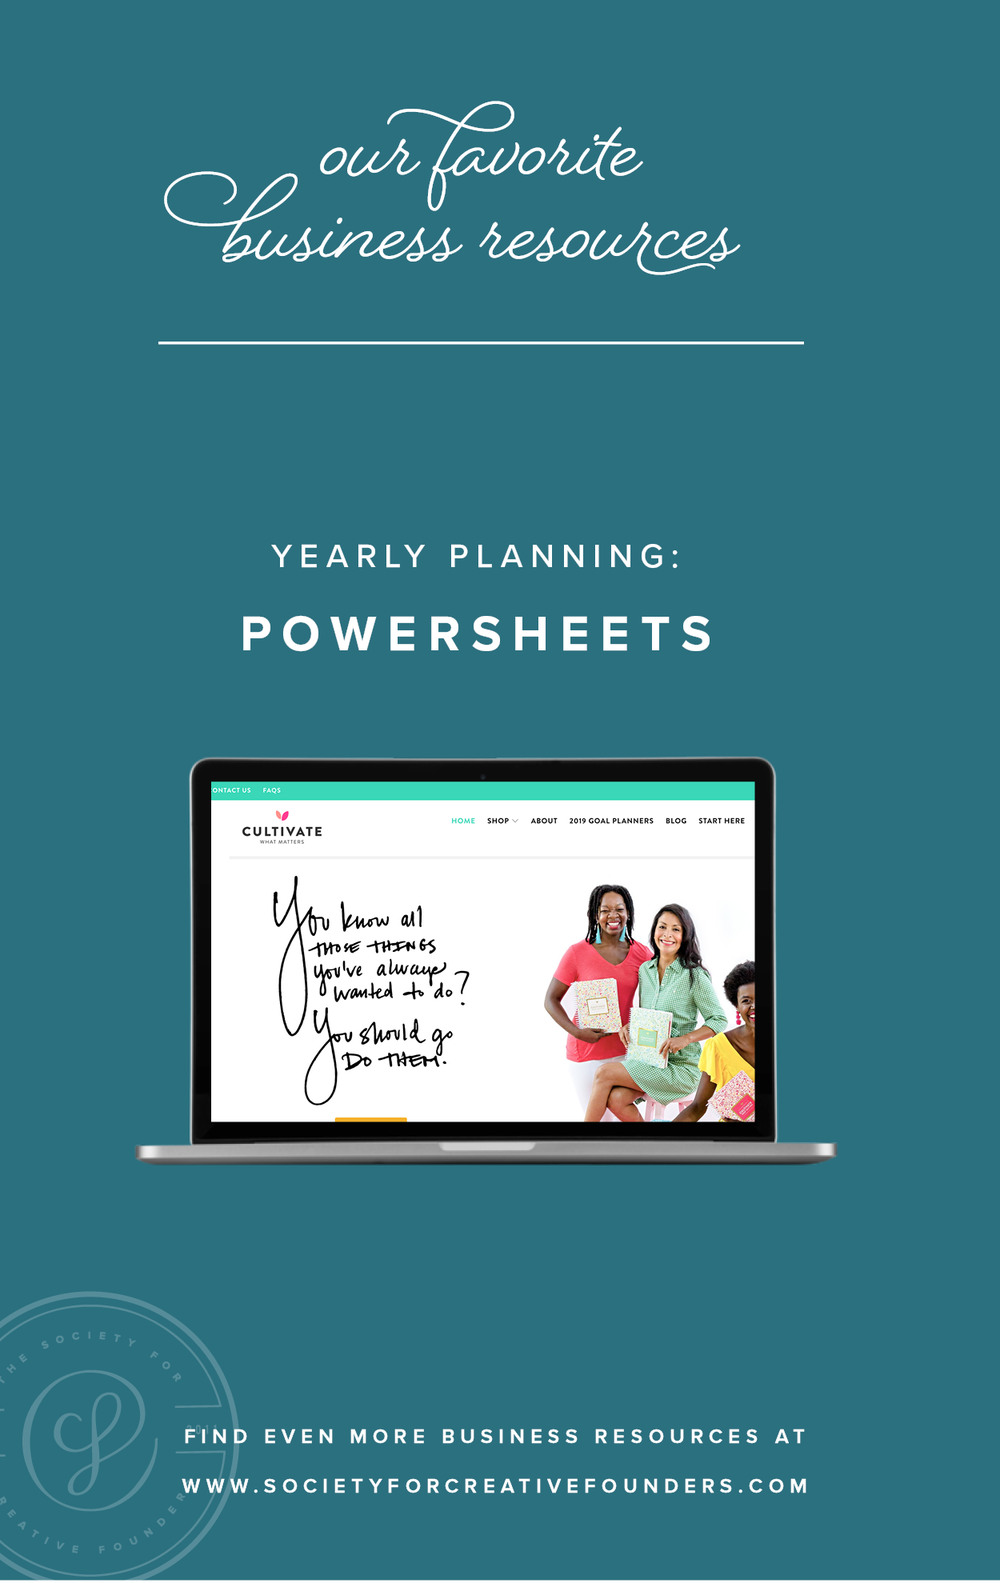 Powersheets - Favorite Business Resources from Society for Creative Founders